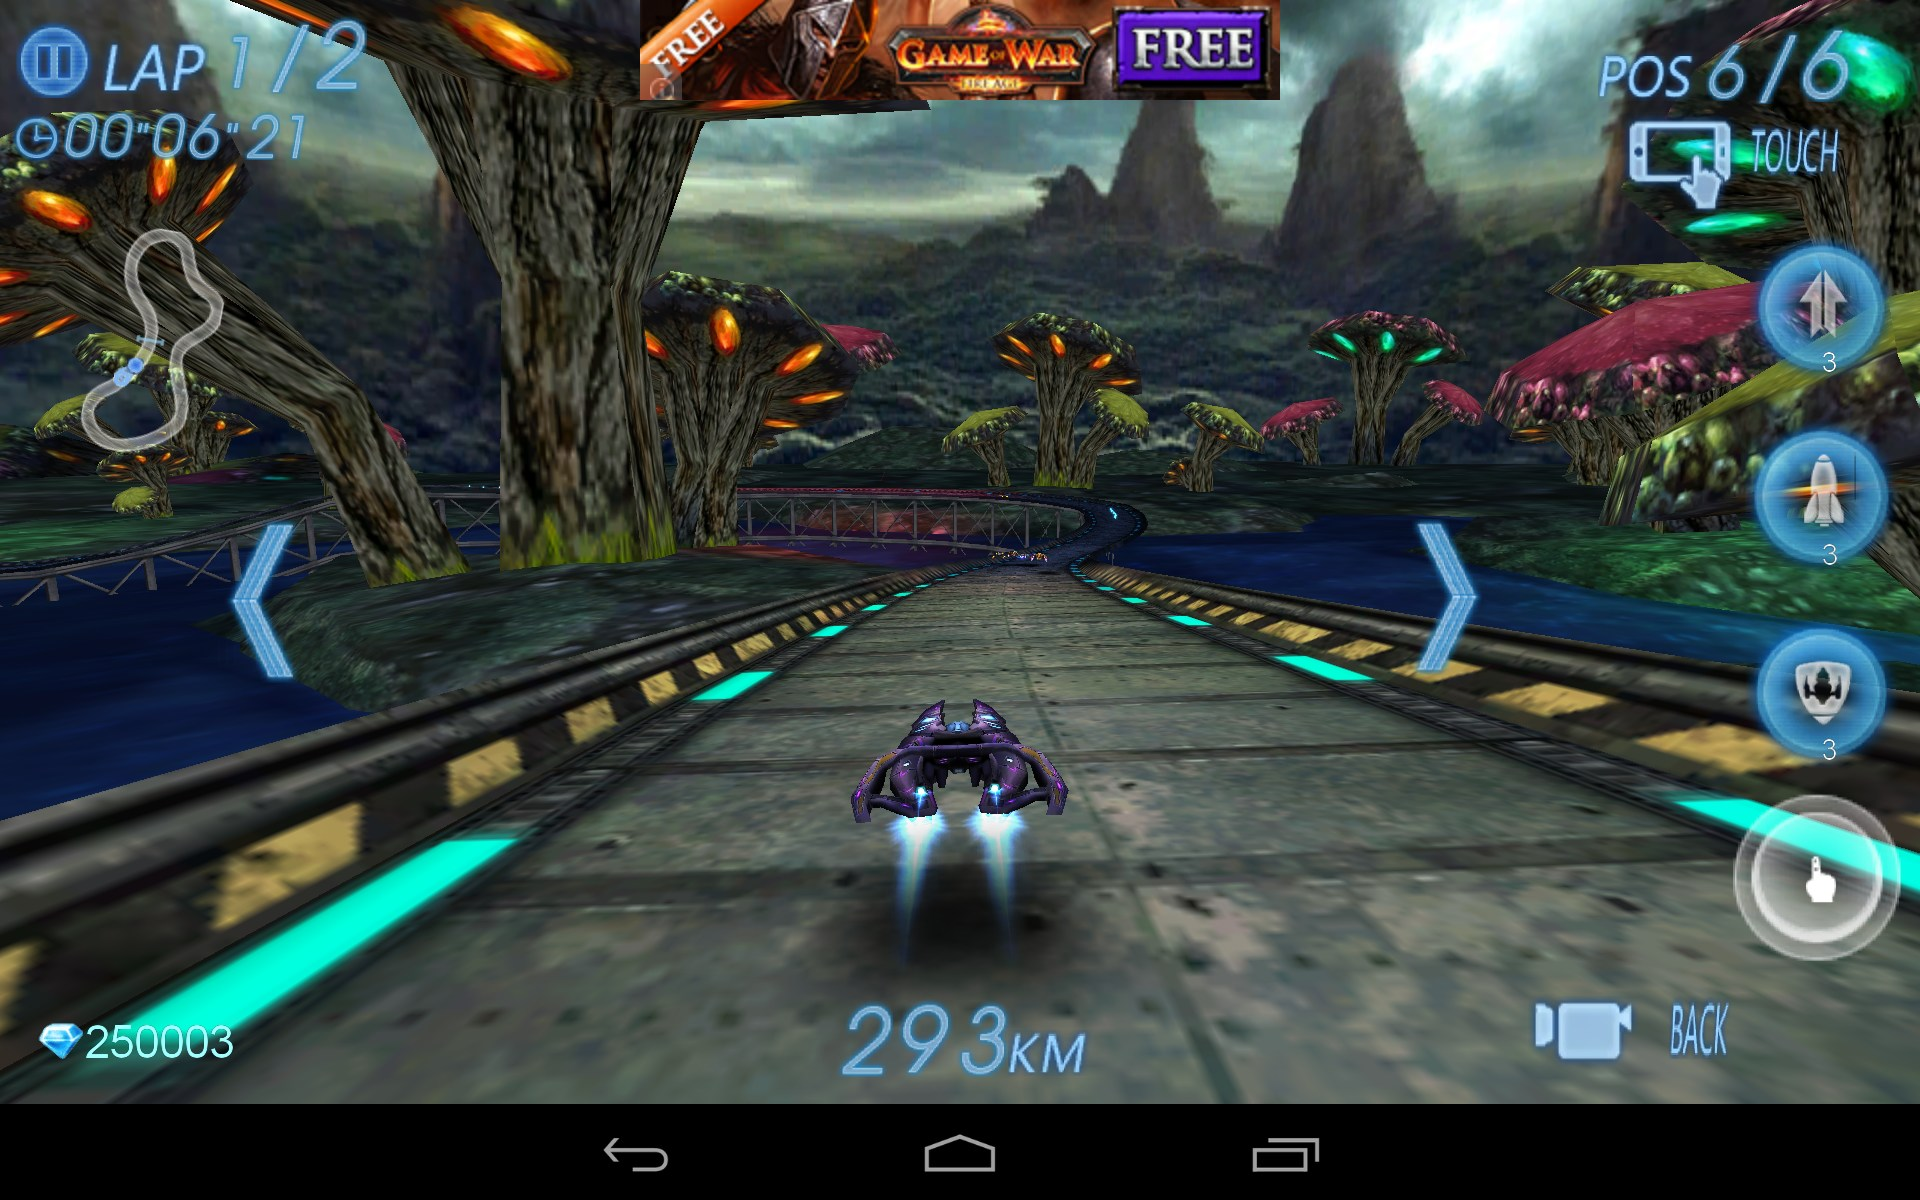 android games free download for samsung galaxy s duos